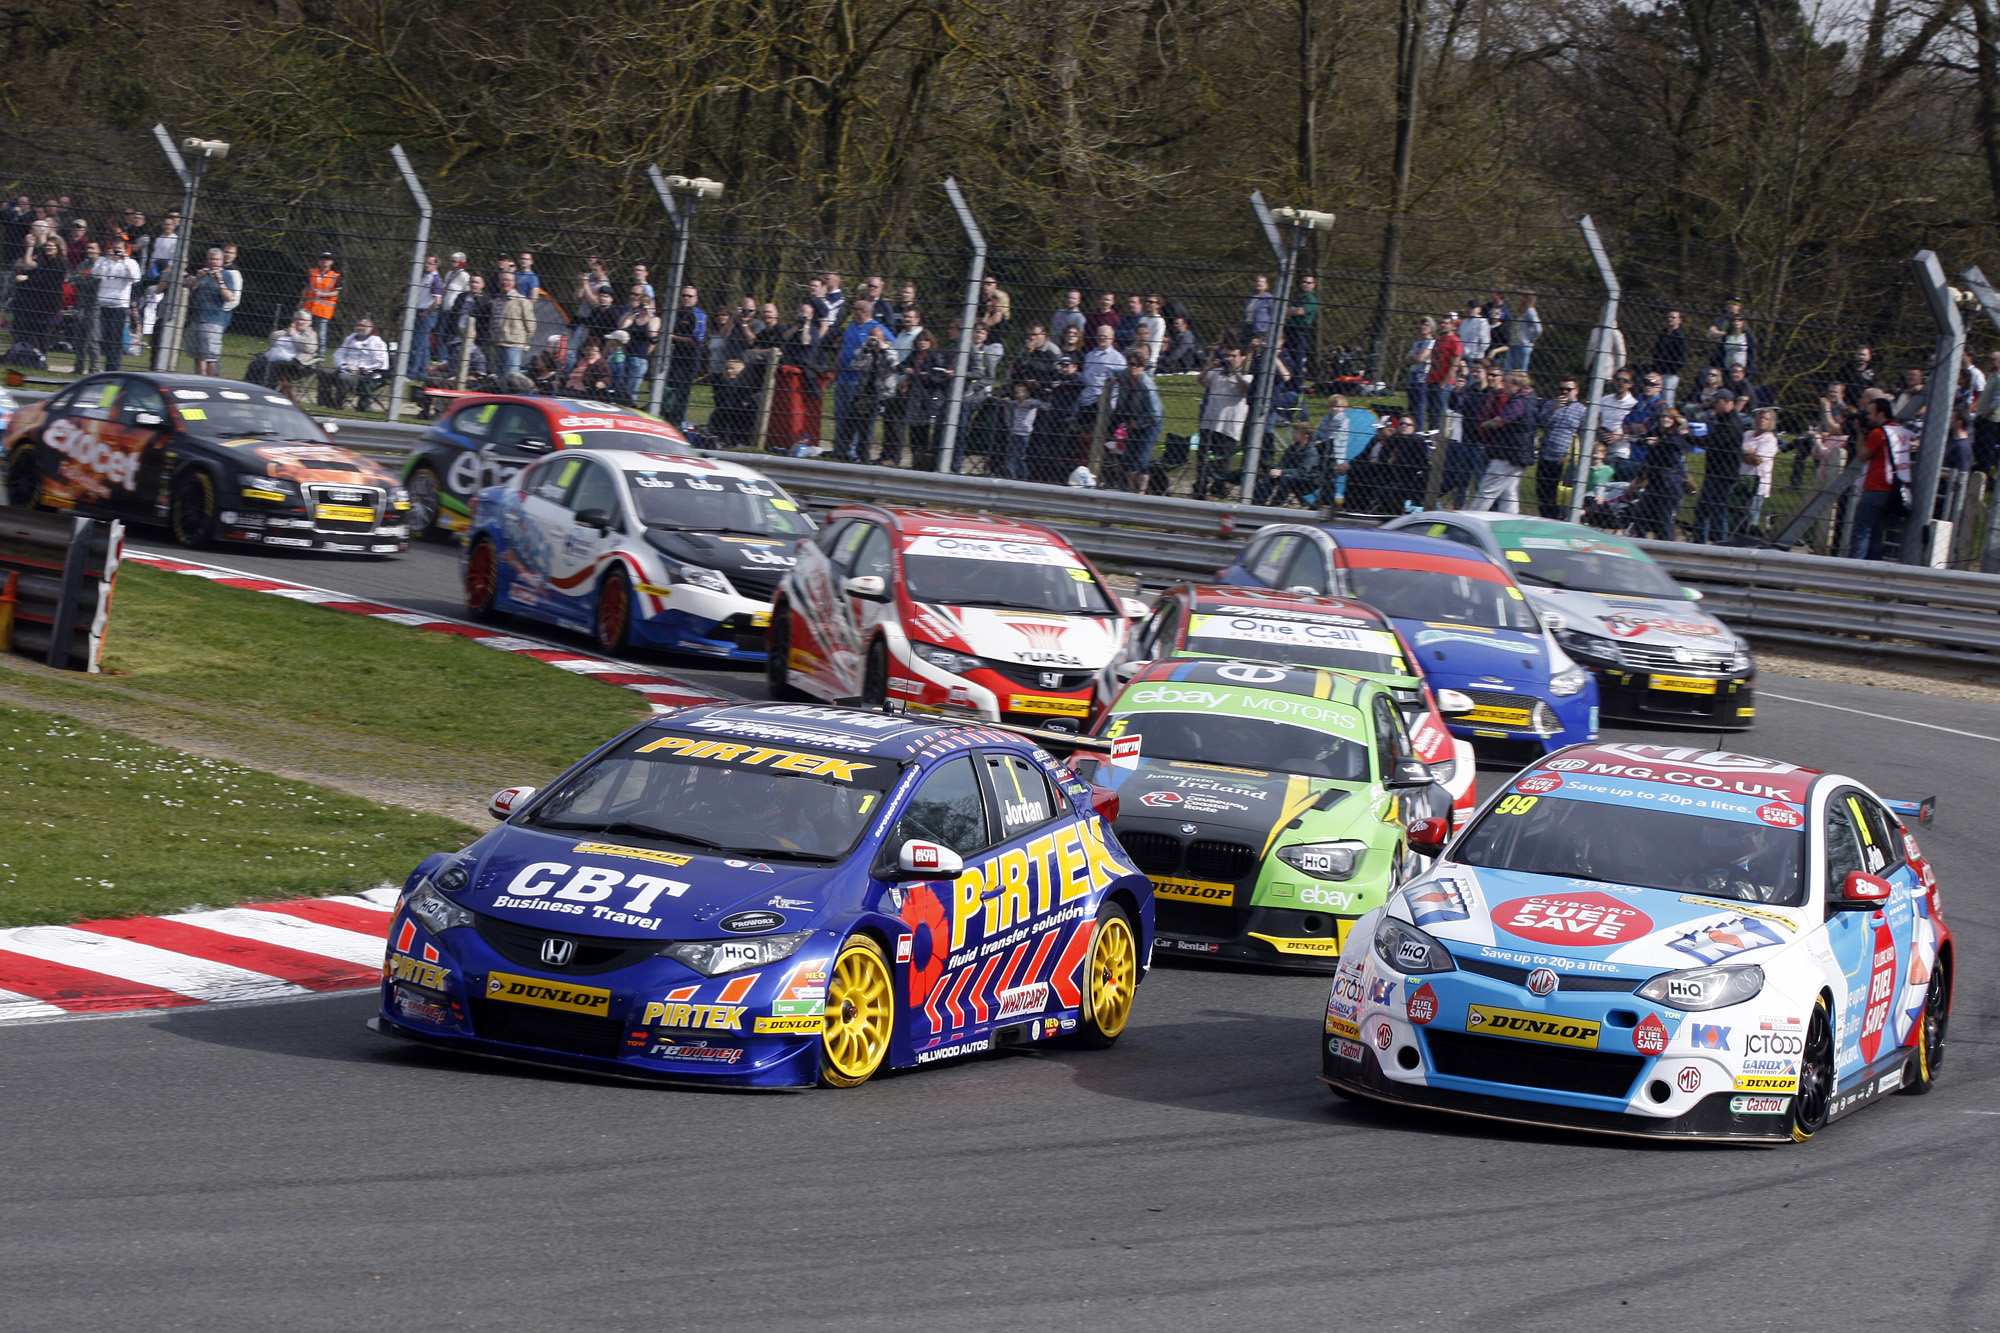 News Shopper: Andrew Jordan and Jason Plato lead into the Paddock bend in race one